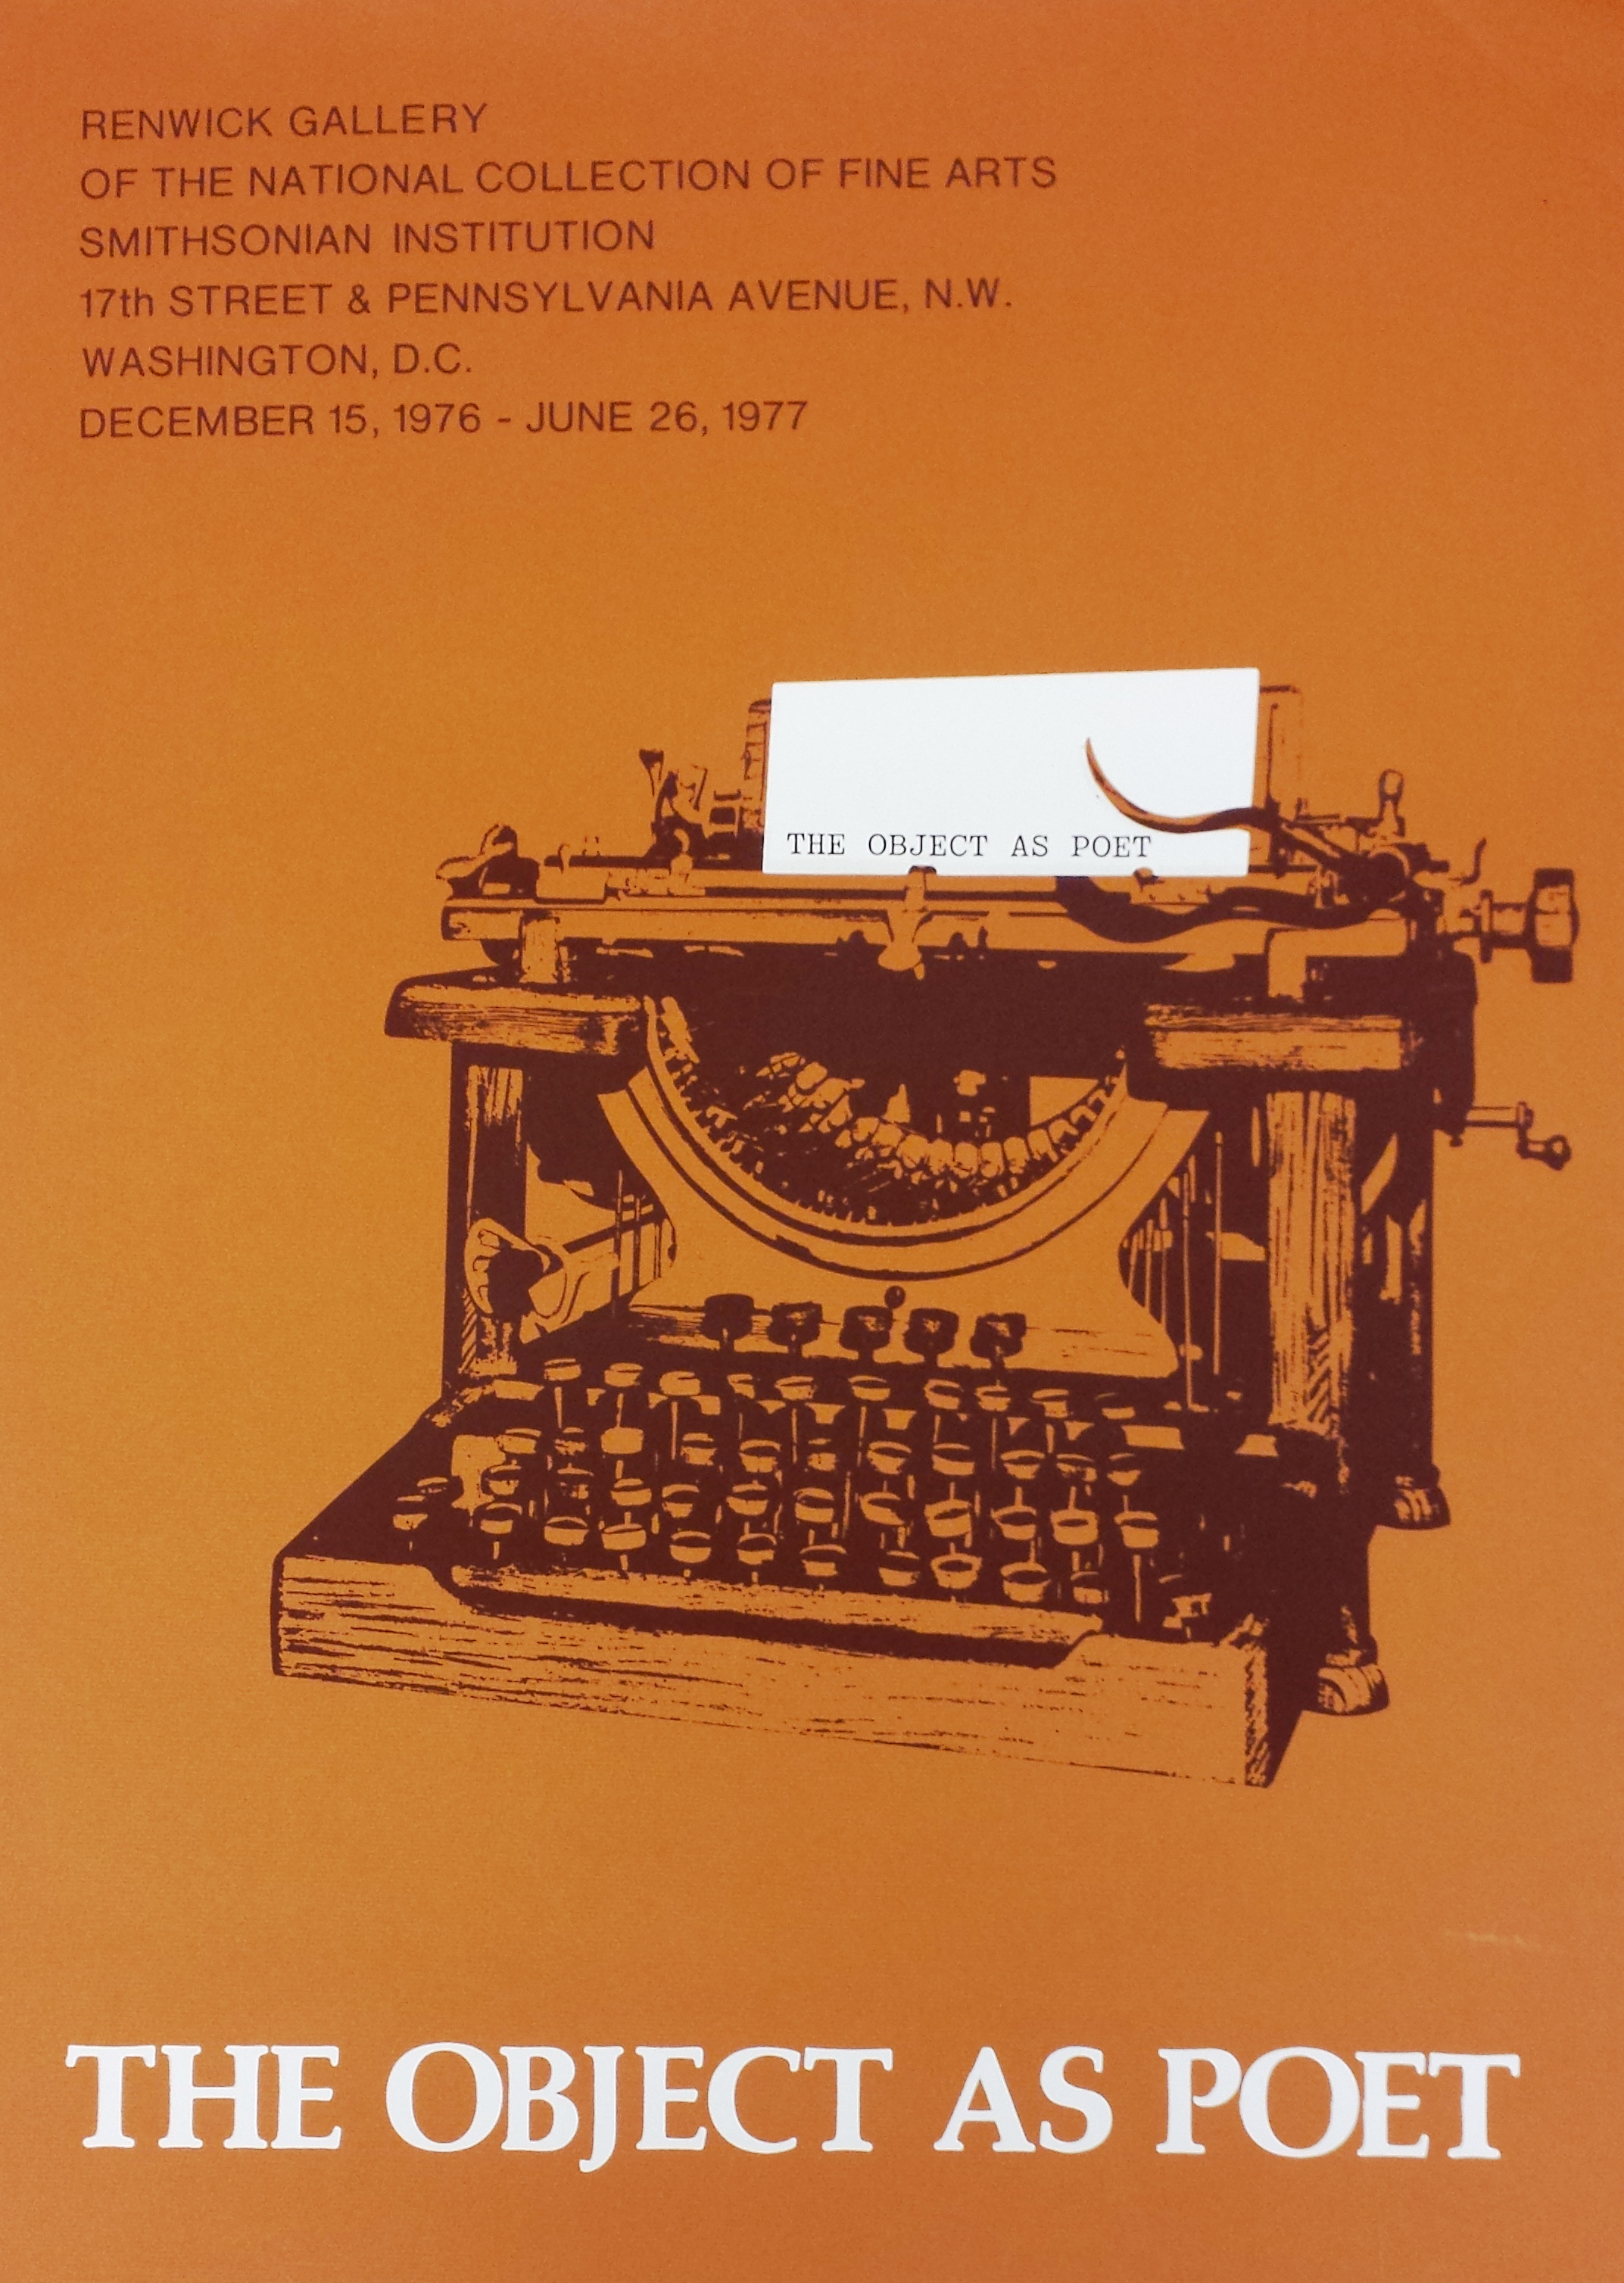 The Object as Poet, 1976-1977.